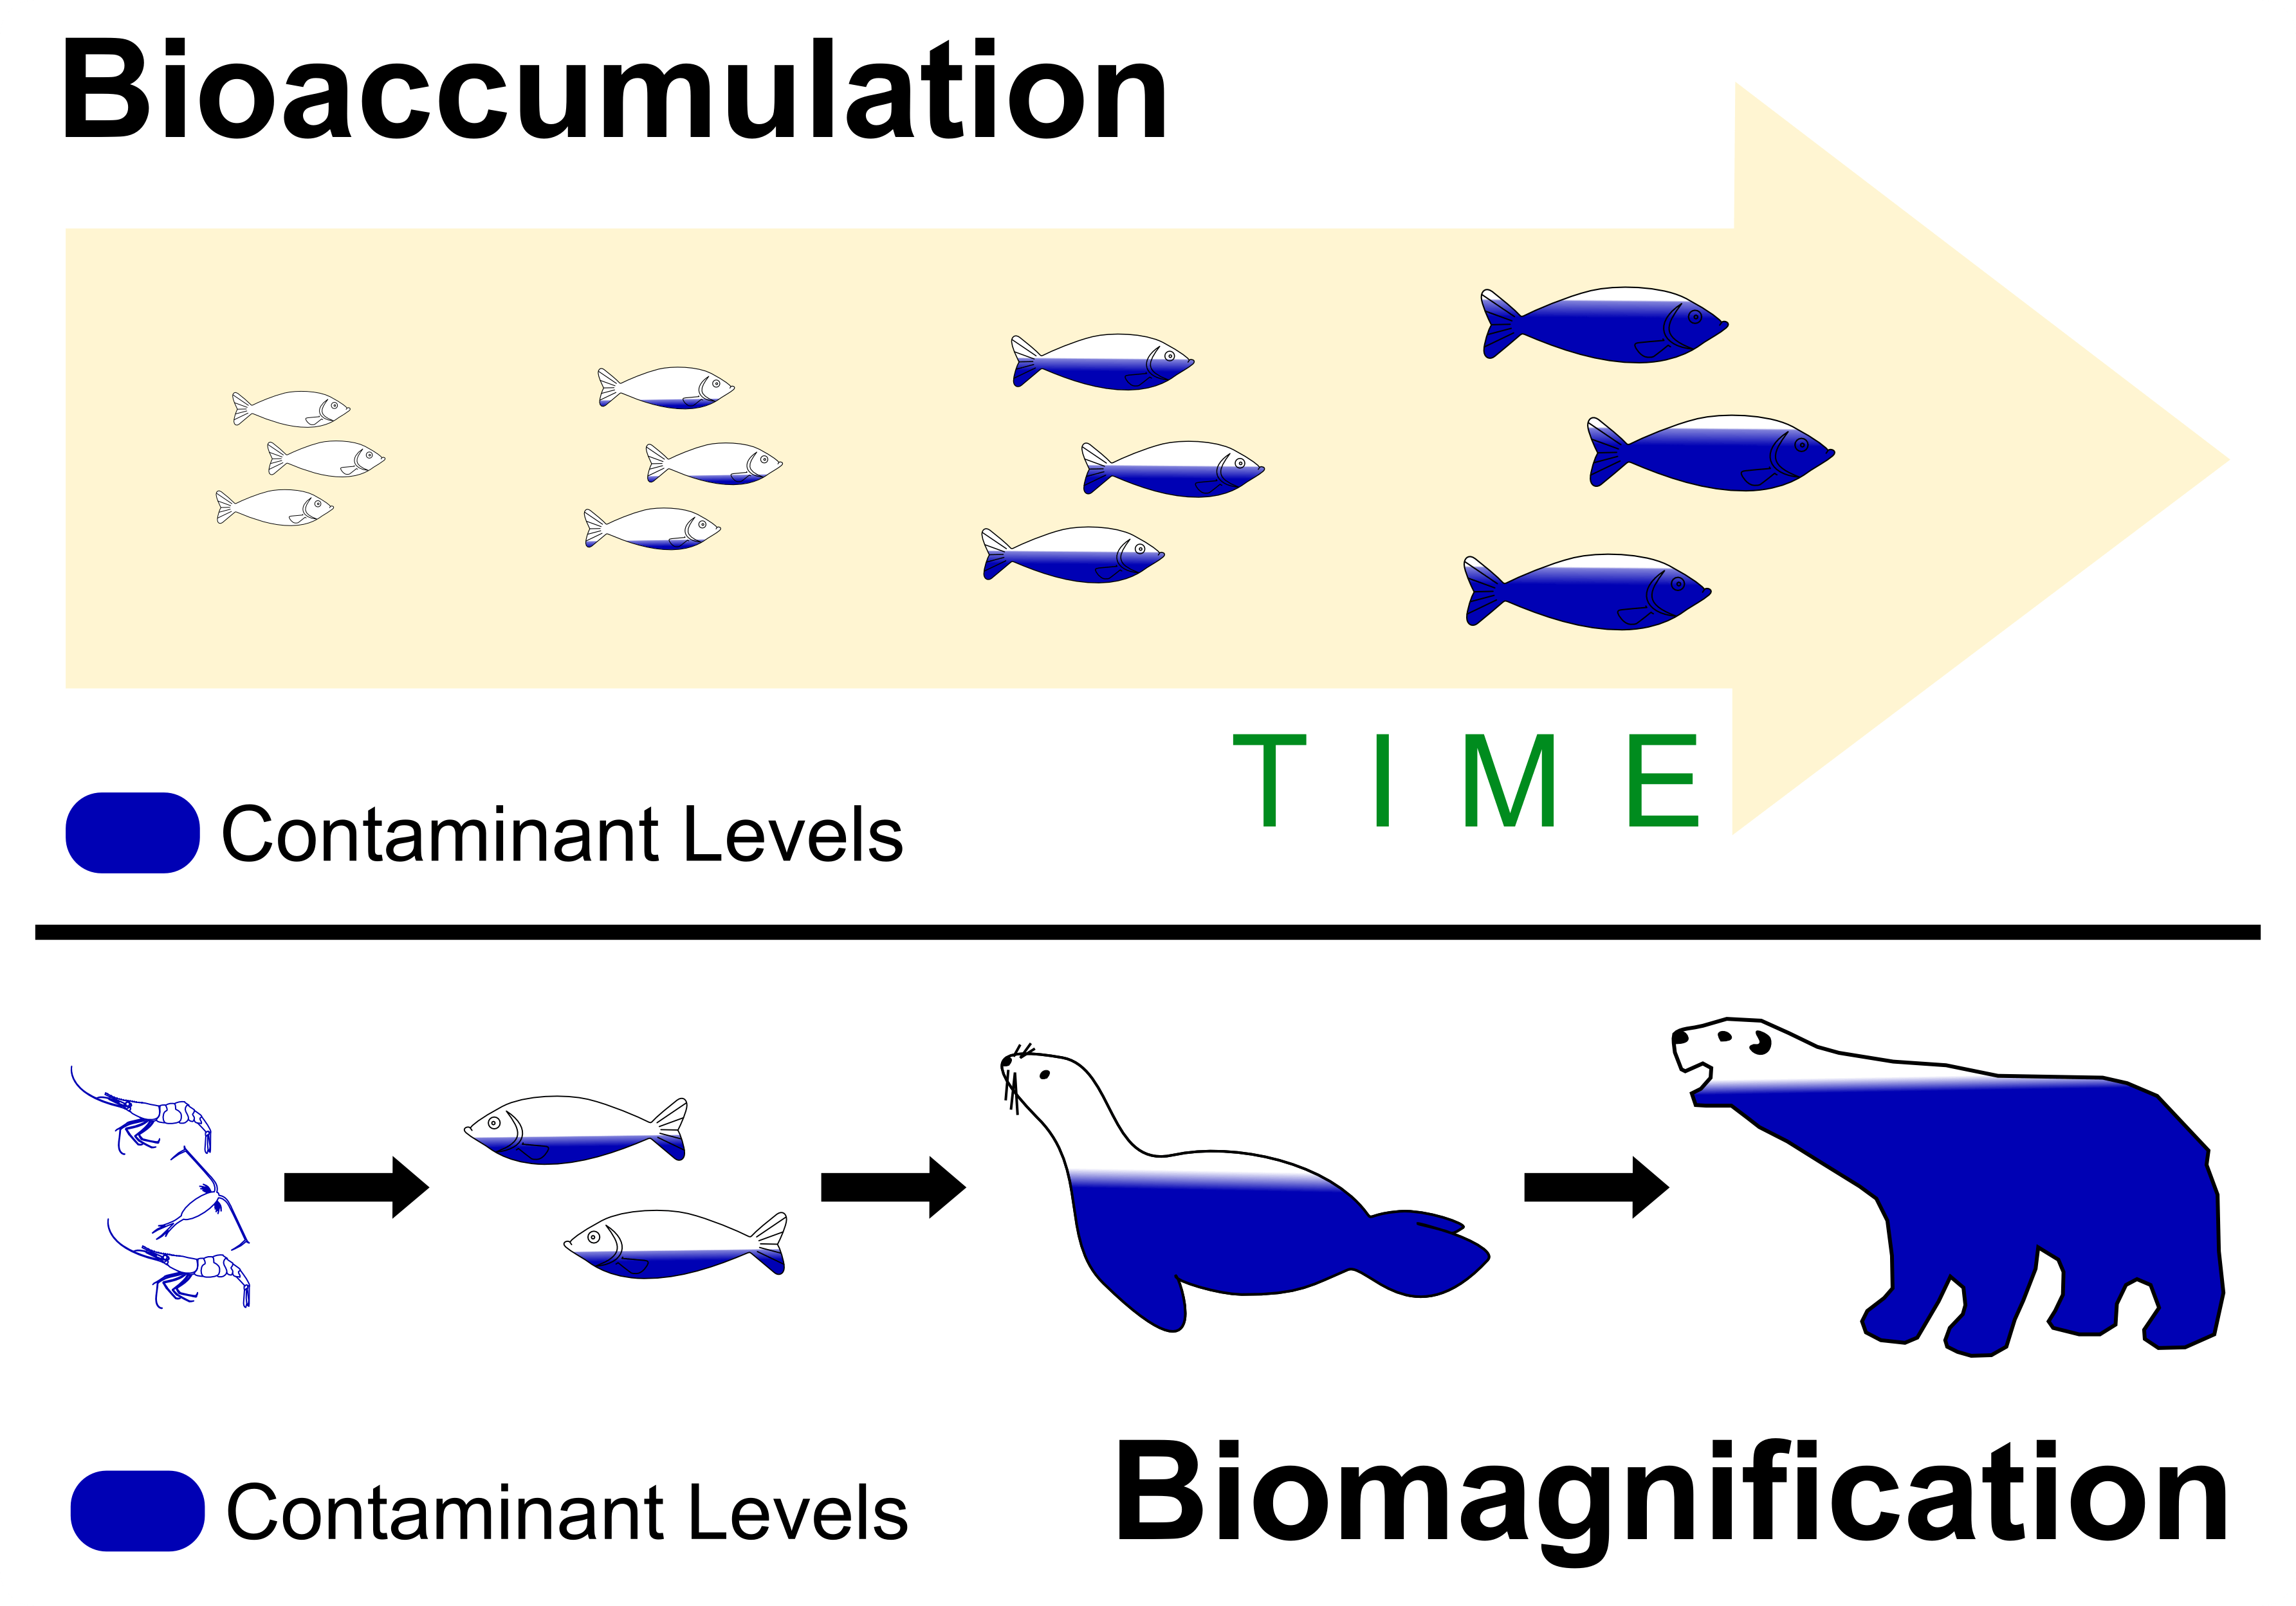 biomagnification occurs across different trophic levels in a food chain